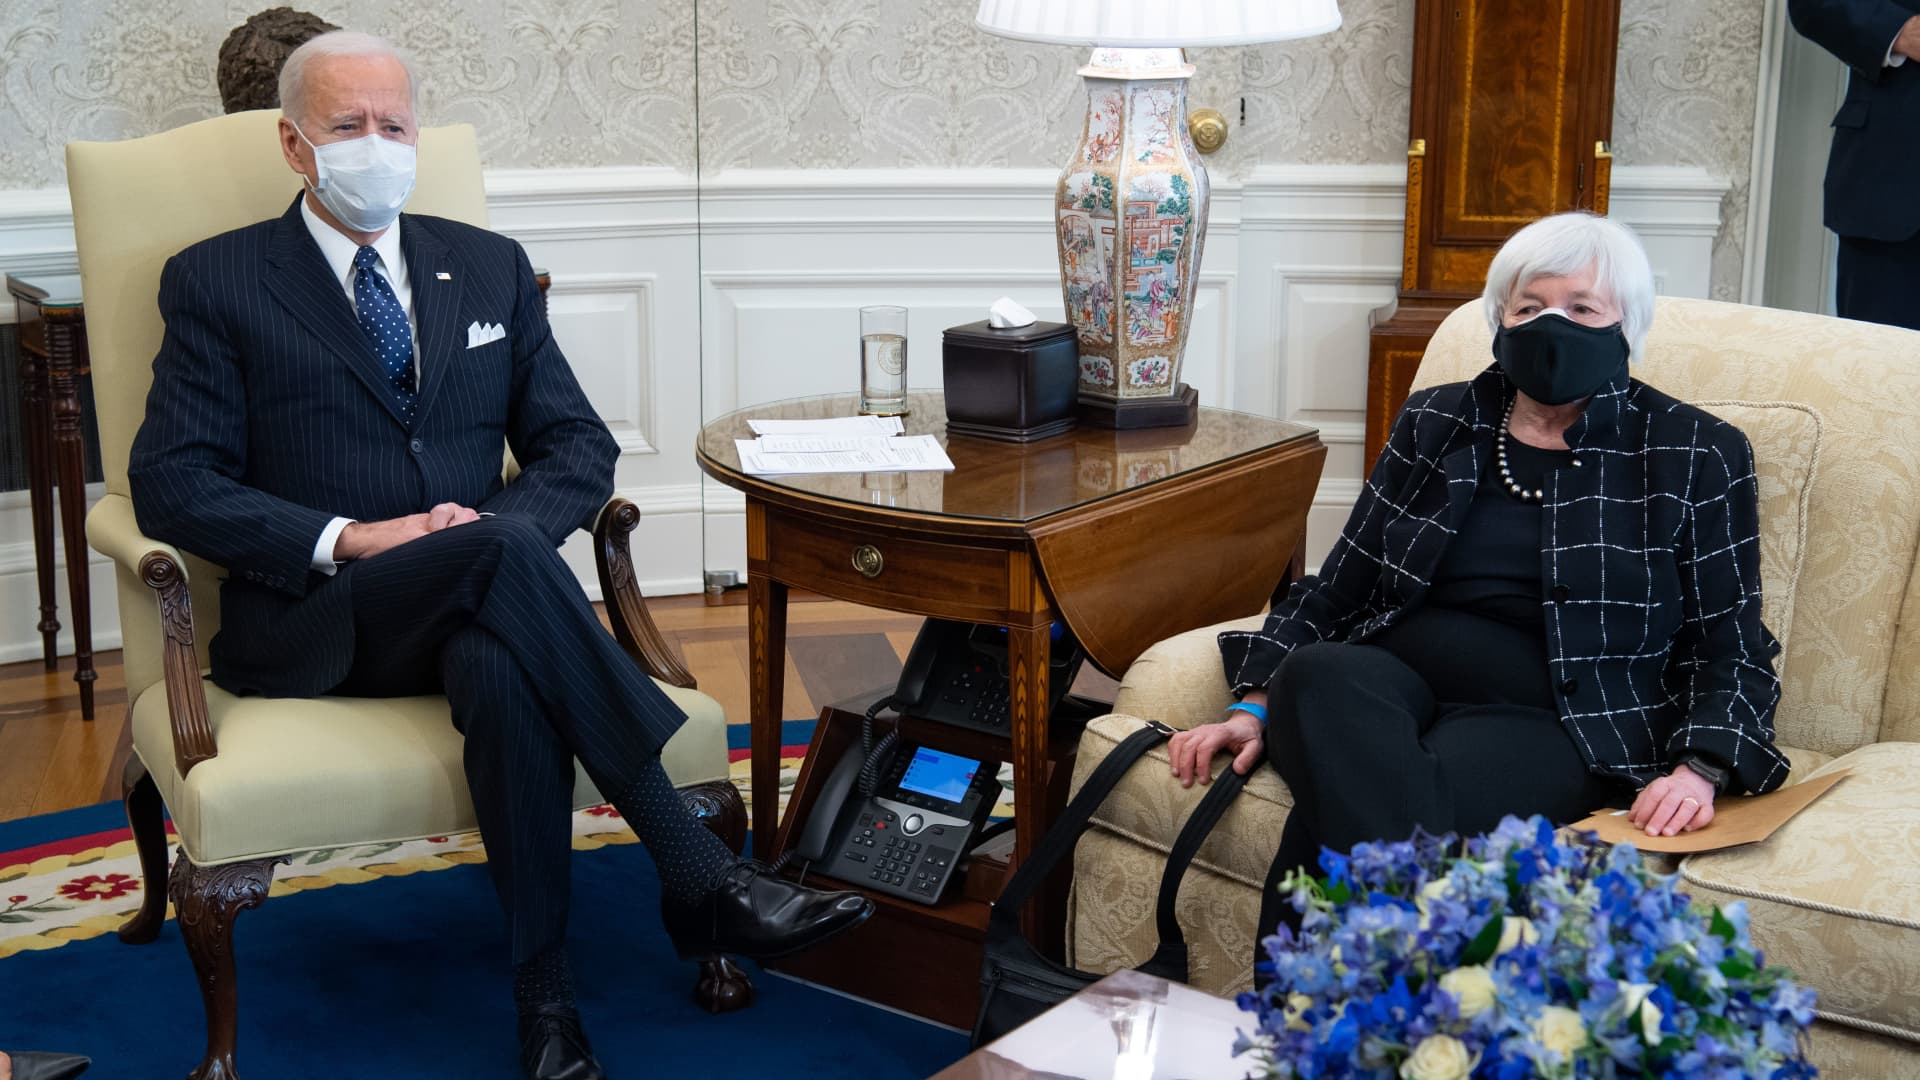 President Joe Biden sits alongside US Treasury Secretary Janet Yellen (R) as he holds a meeting with business leaders about a Covid relief bill in the Oval Office of the White House in Washington, DC, February 9, 2021.